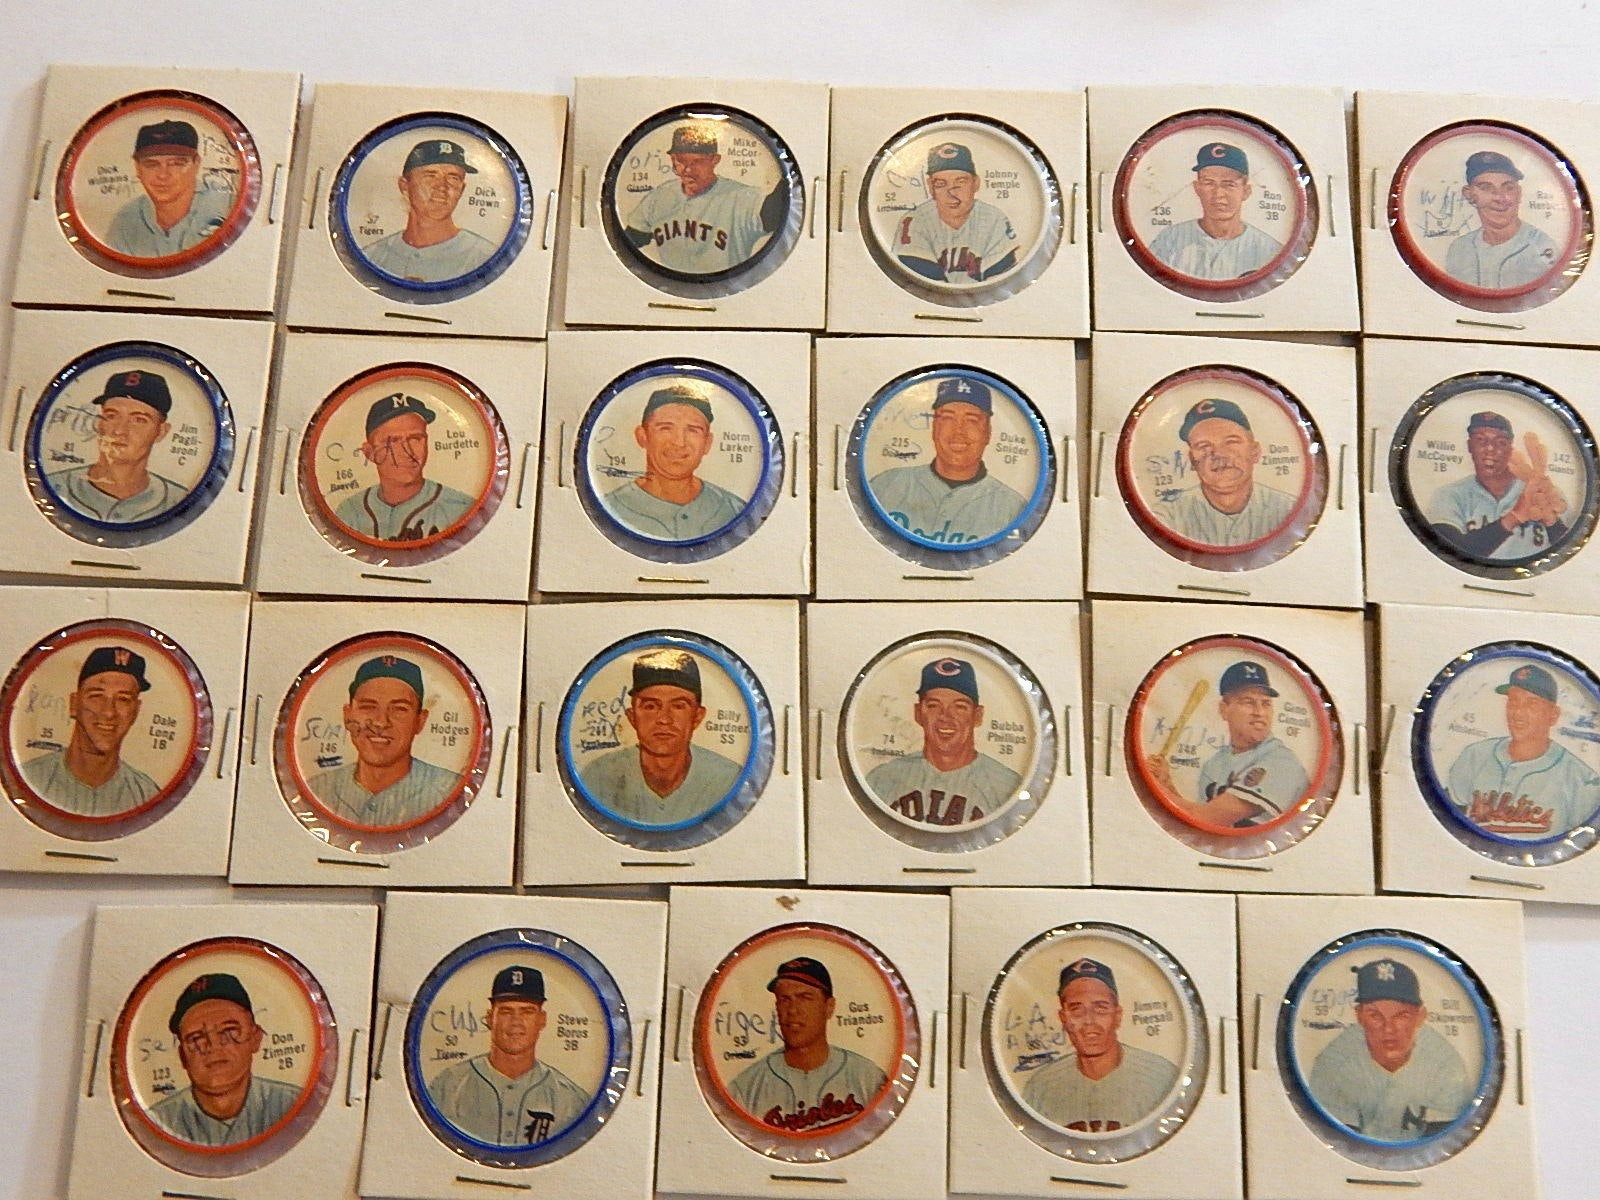 1962 Salada Junket Baseball Coins with McCovey, Snider, Hodges, and More